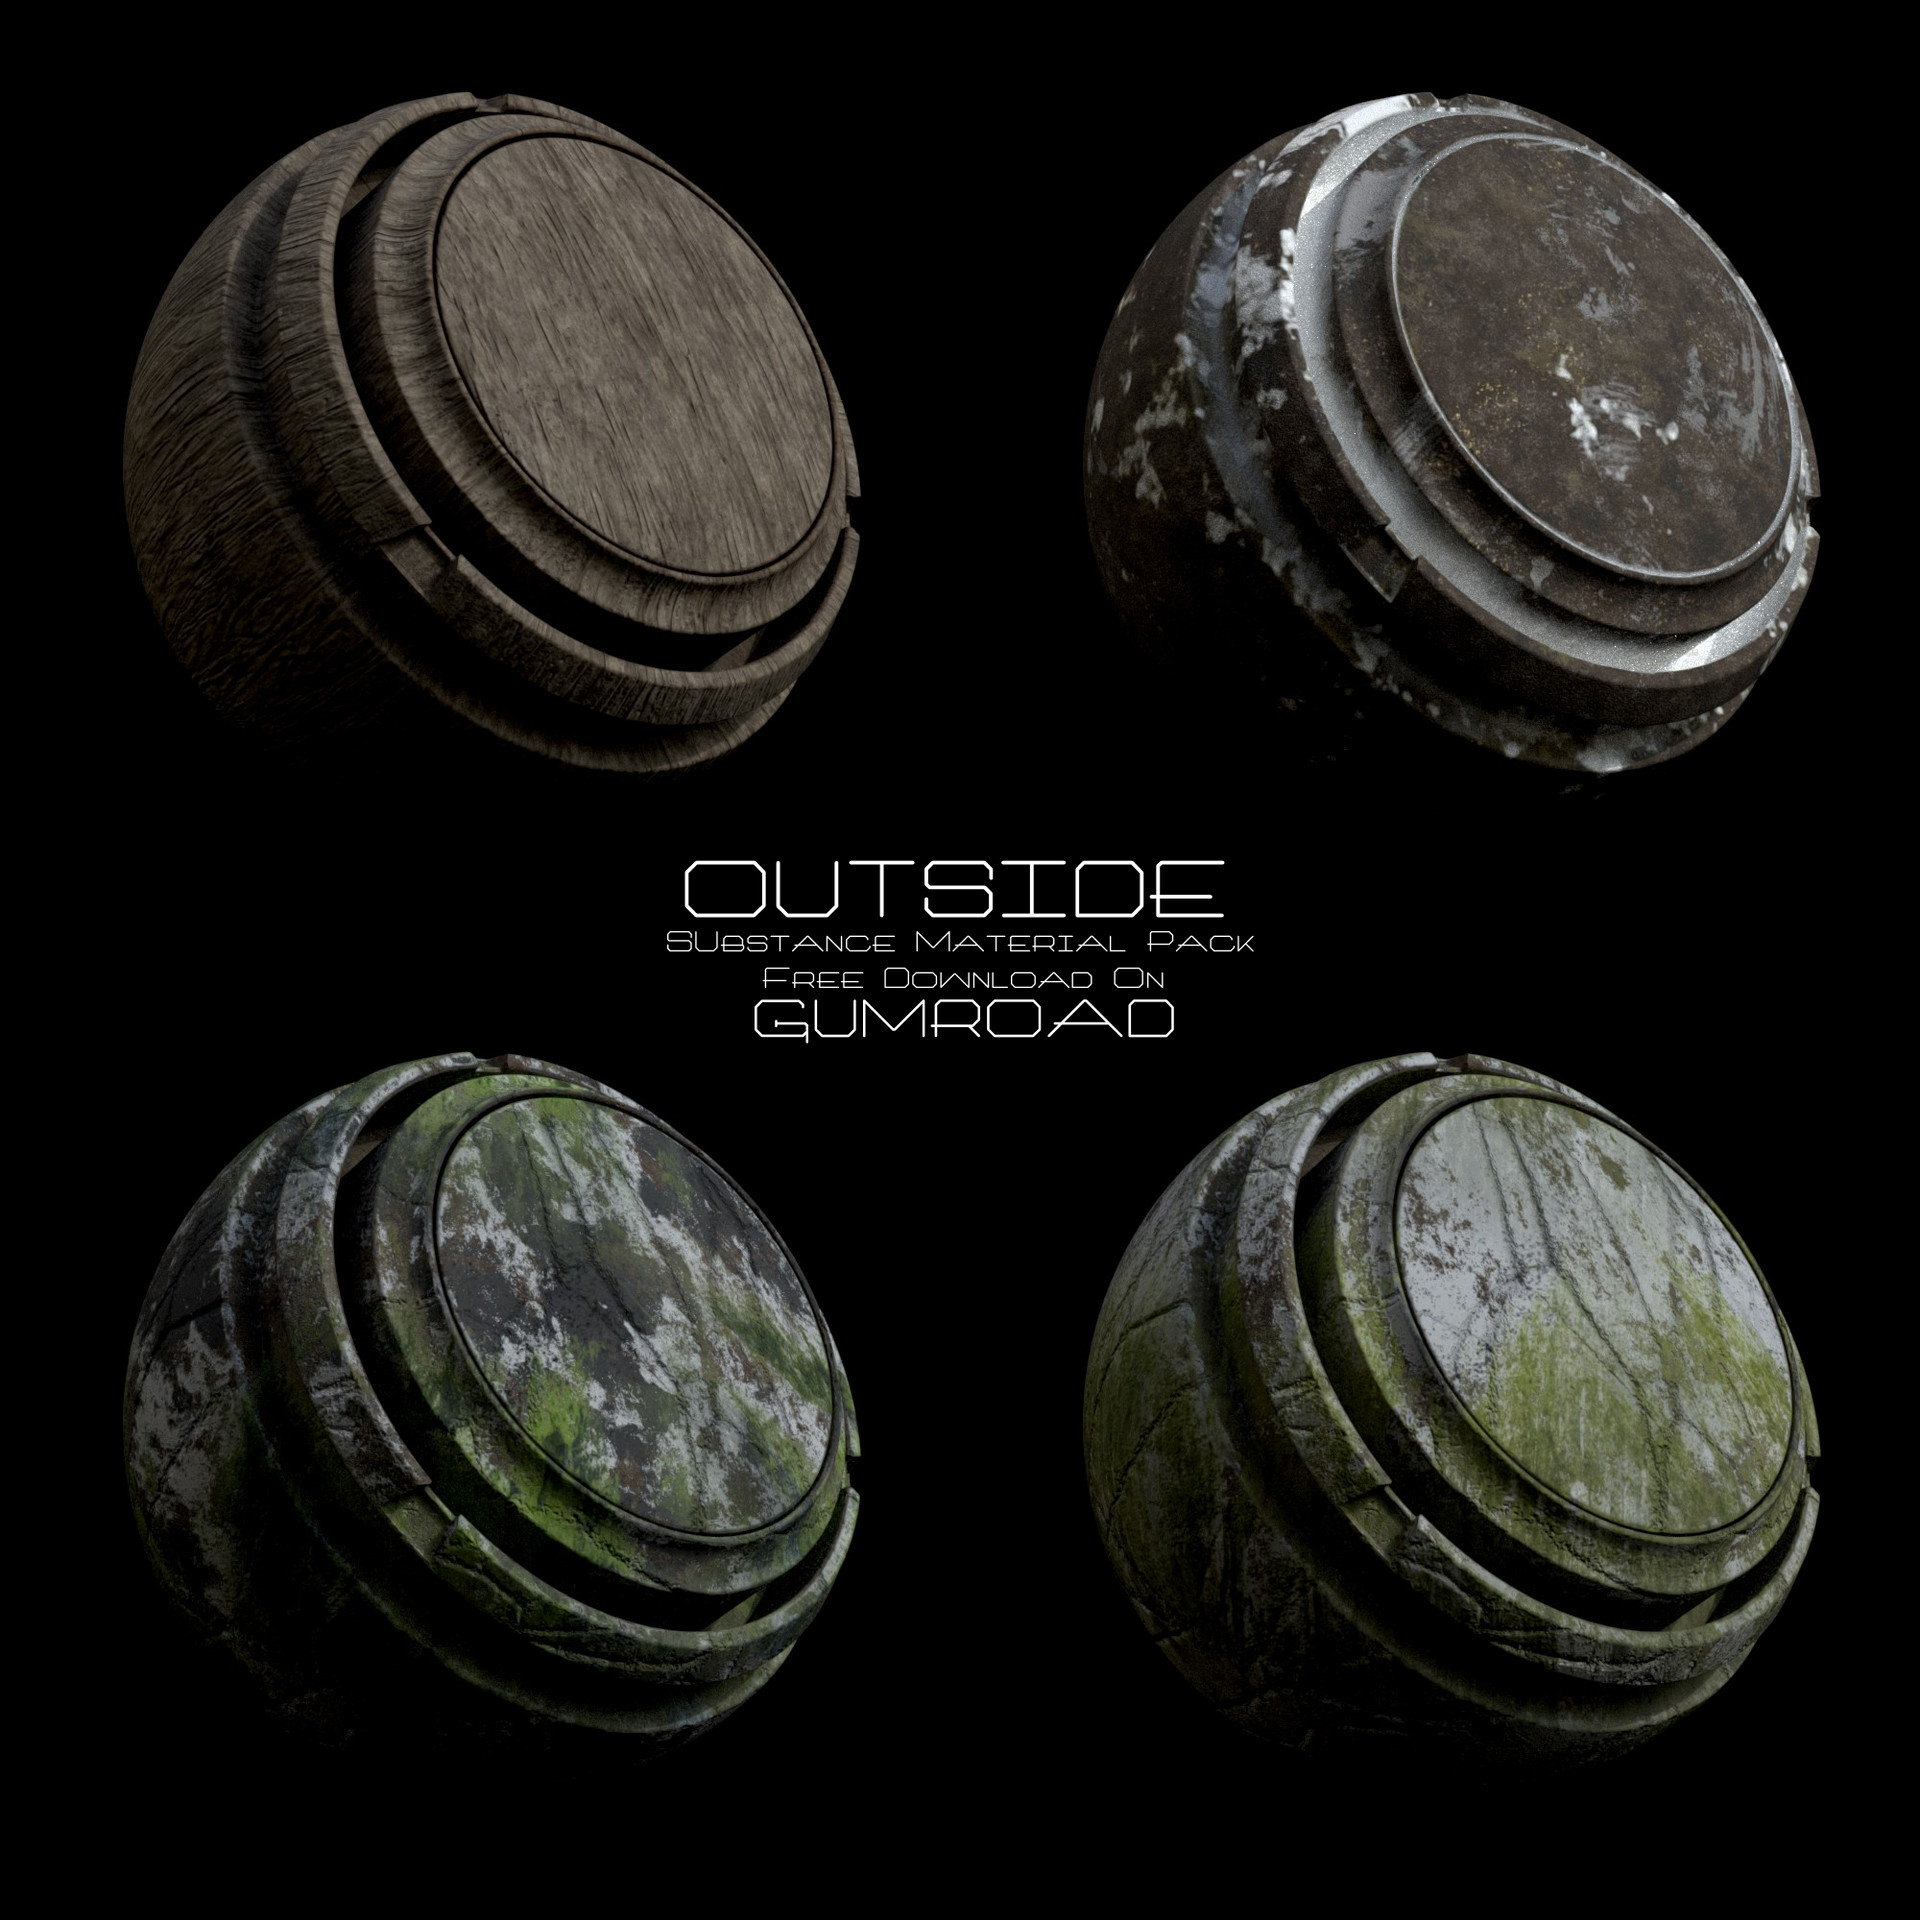 ArtStation - Outside Substance Smart Material Pack by